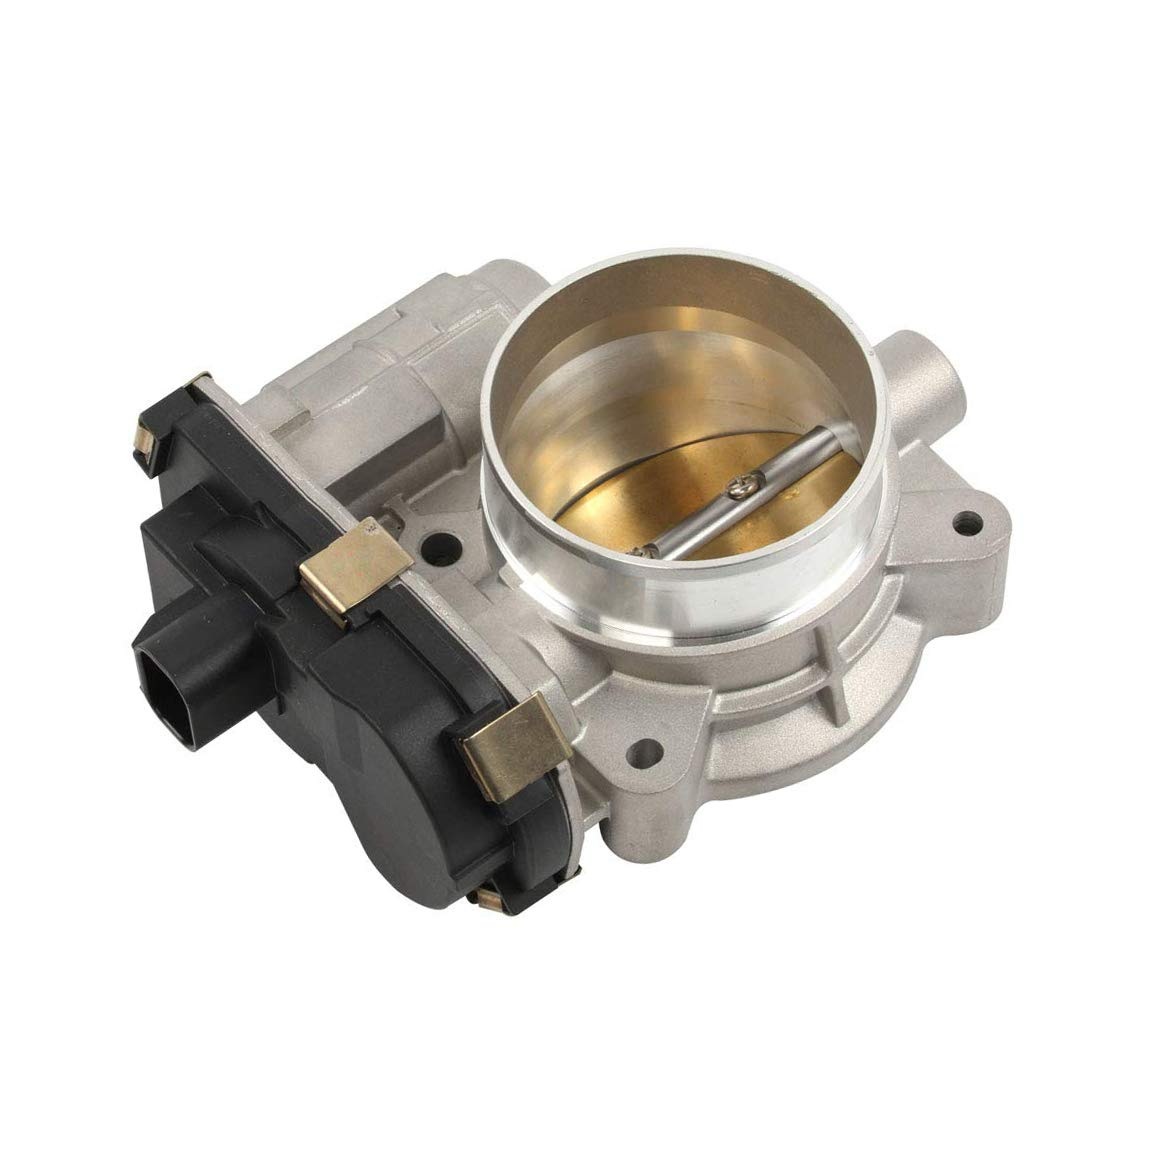 HOWYAA HYVE72-1 Electronic Throttle Body Assembly for 2008-2014 Express 1500//Savana 1500; 2007-2013 Silverado 1500// Sierra 1500